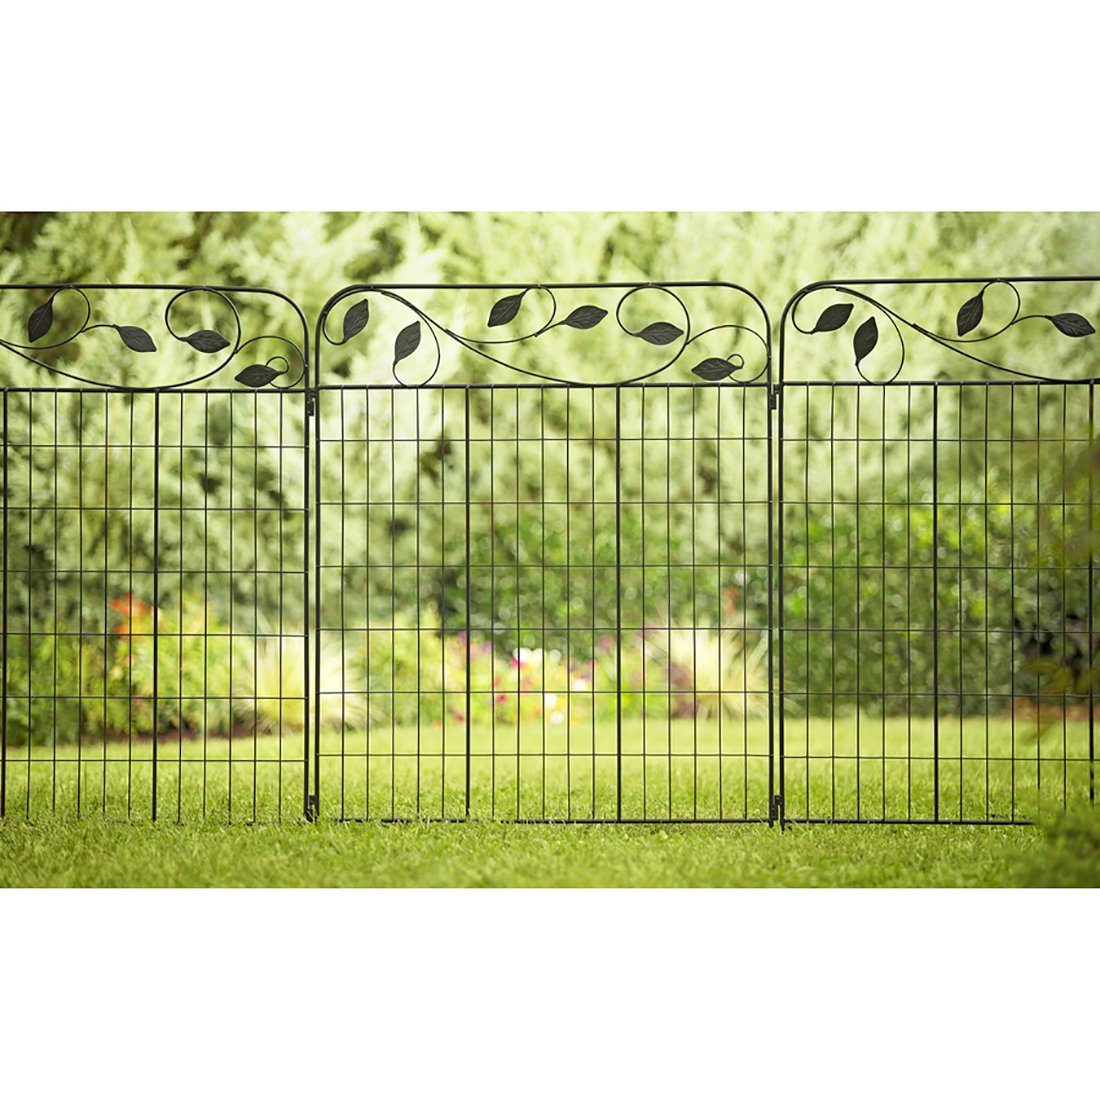 Amagabeli Decorative Garden Fence Coated Metal Outdoor Rustproof 36 ...